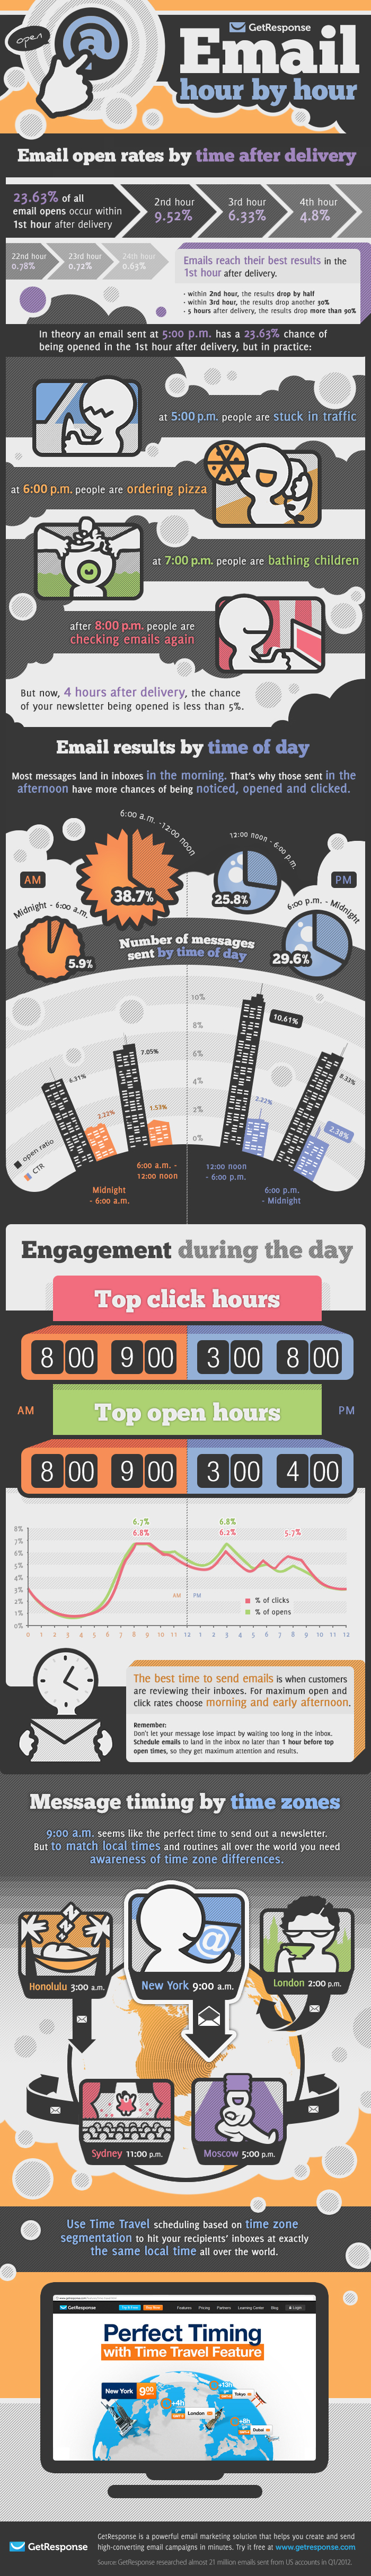 Infographic - Email Opens By Daypart